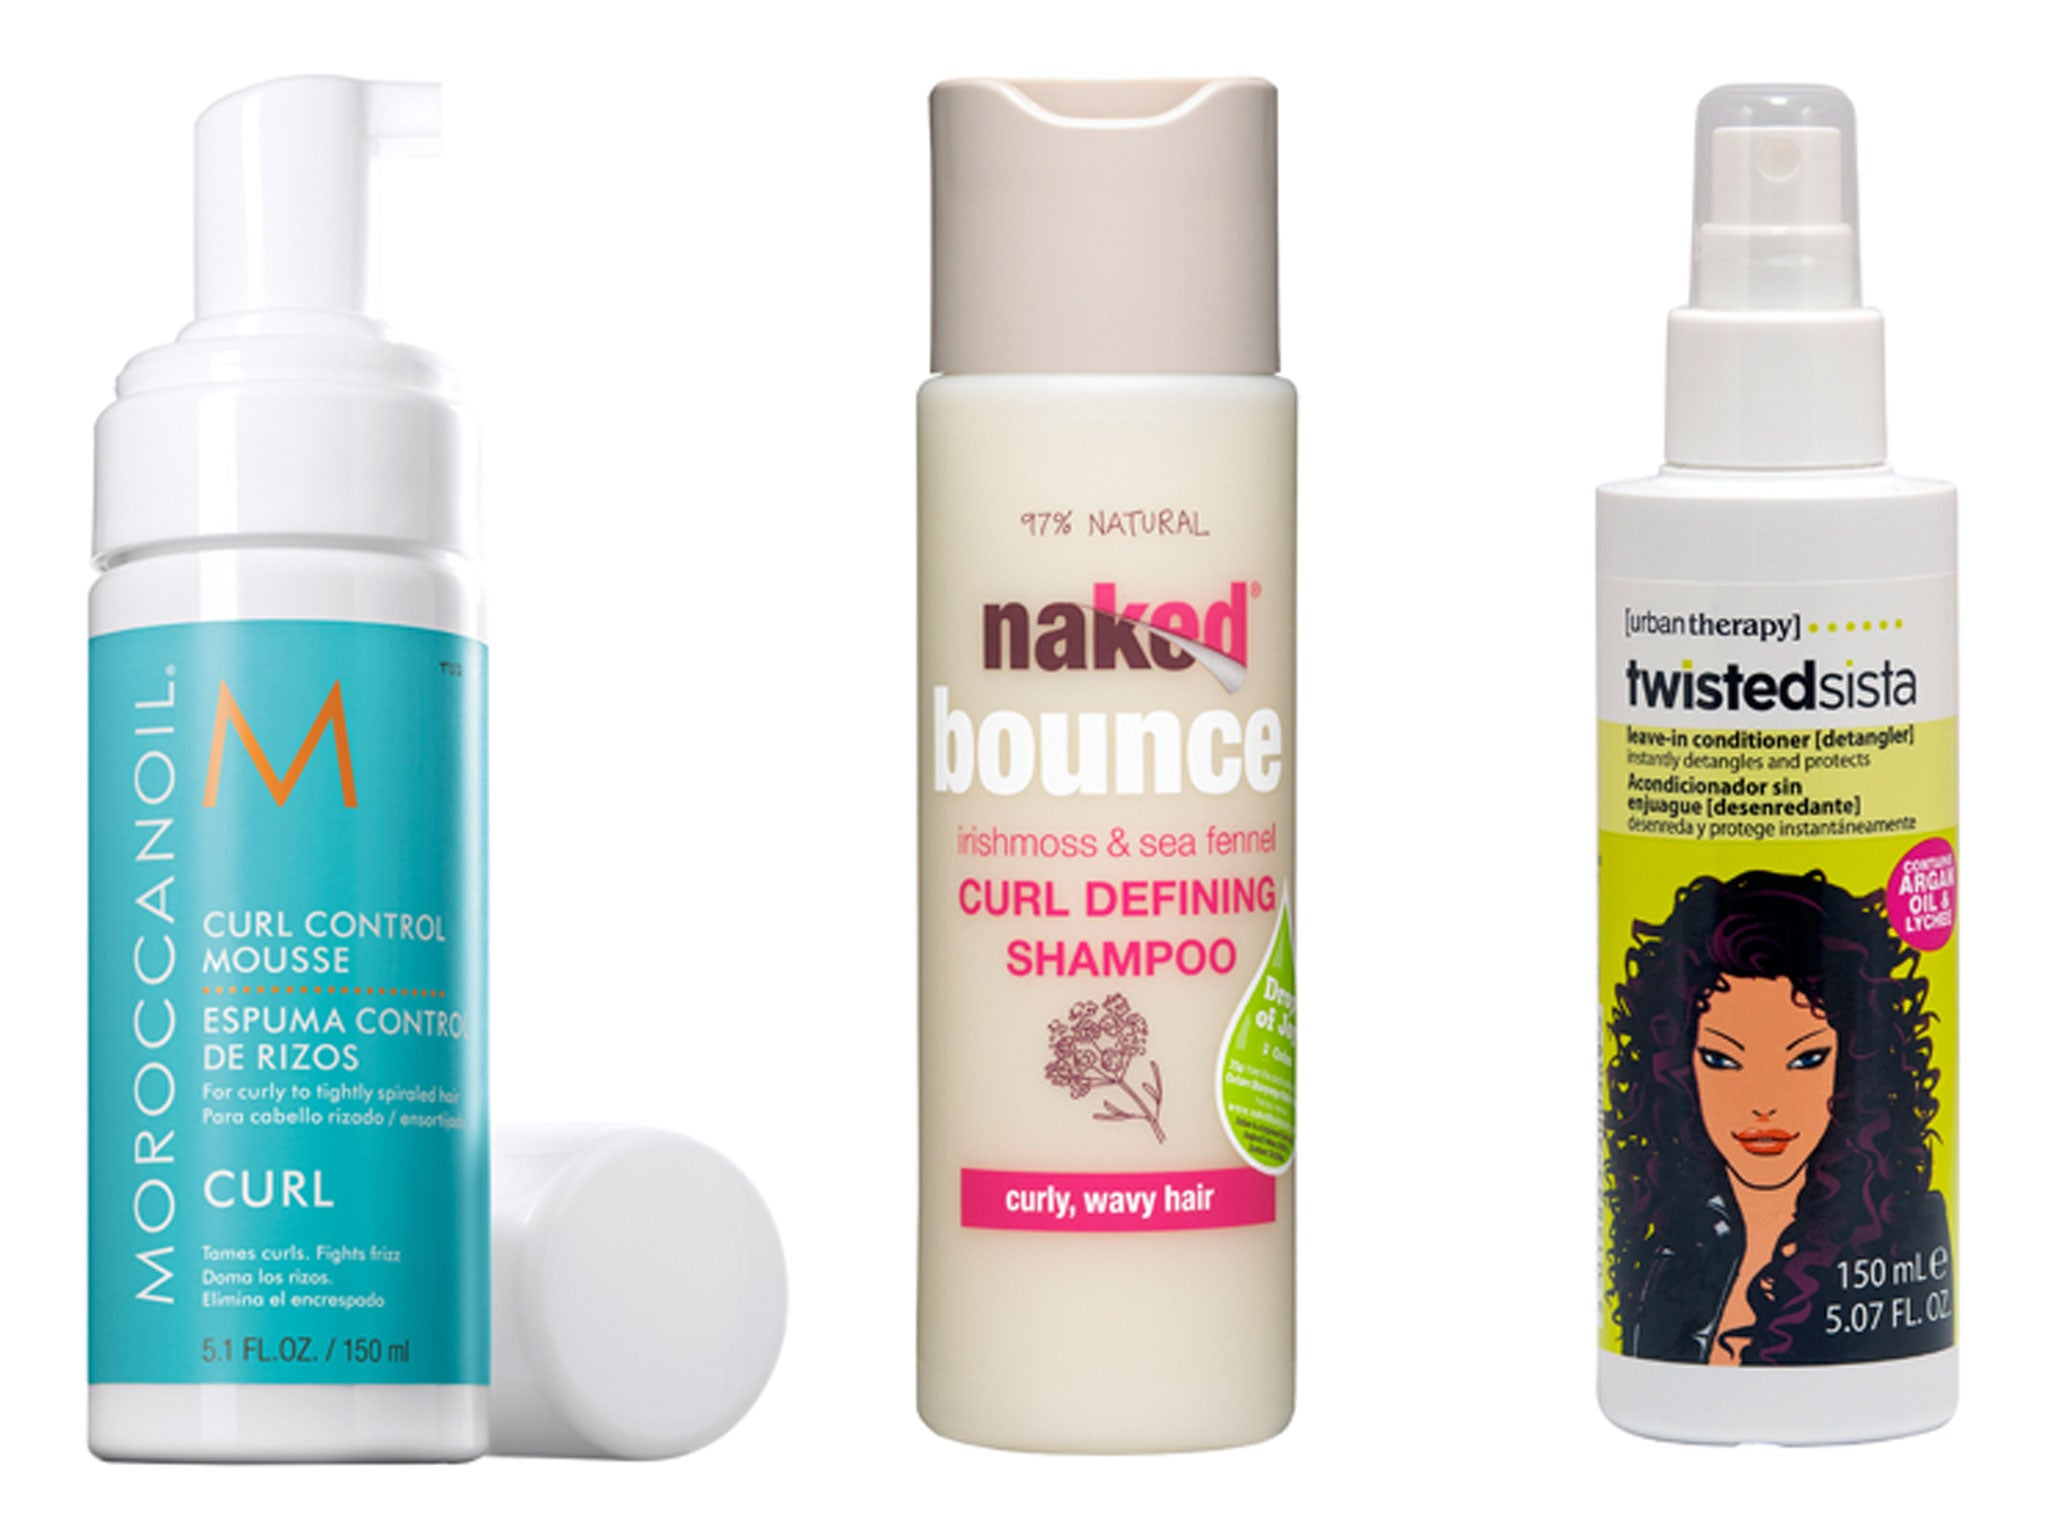 10 best products for curly hair  The Independent